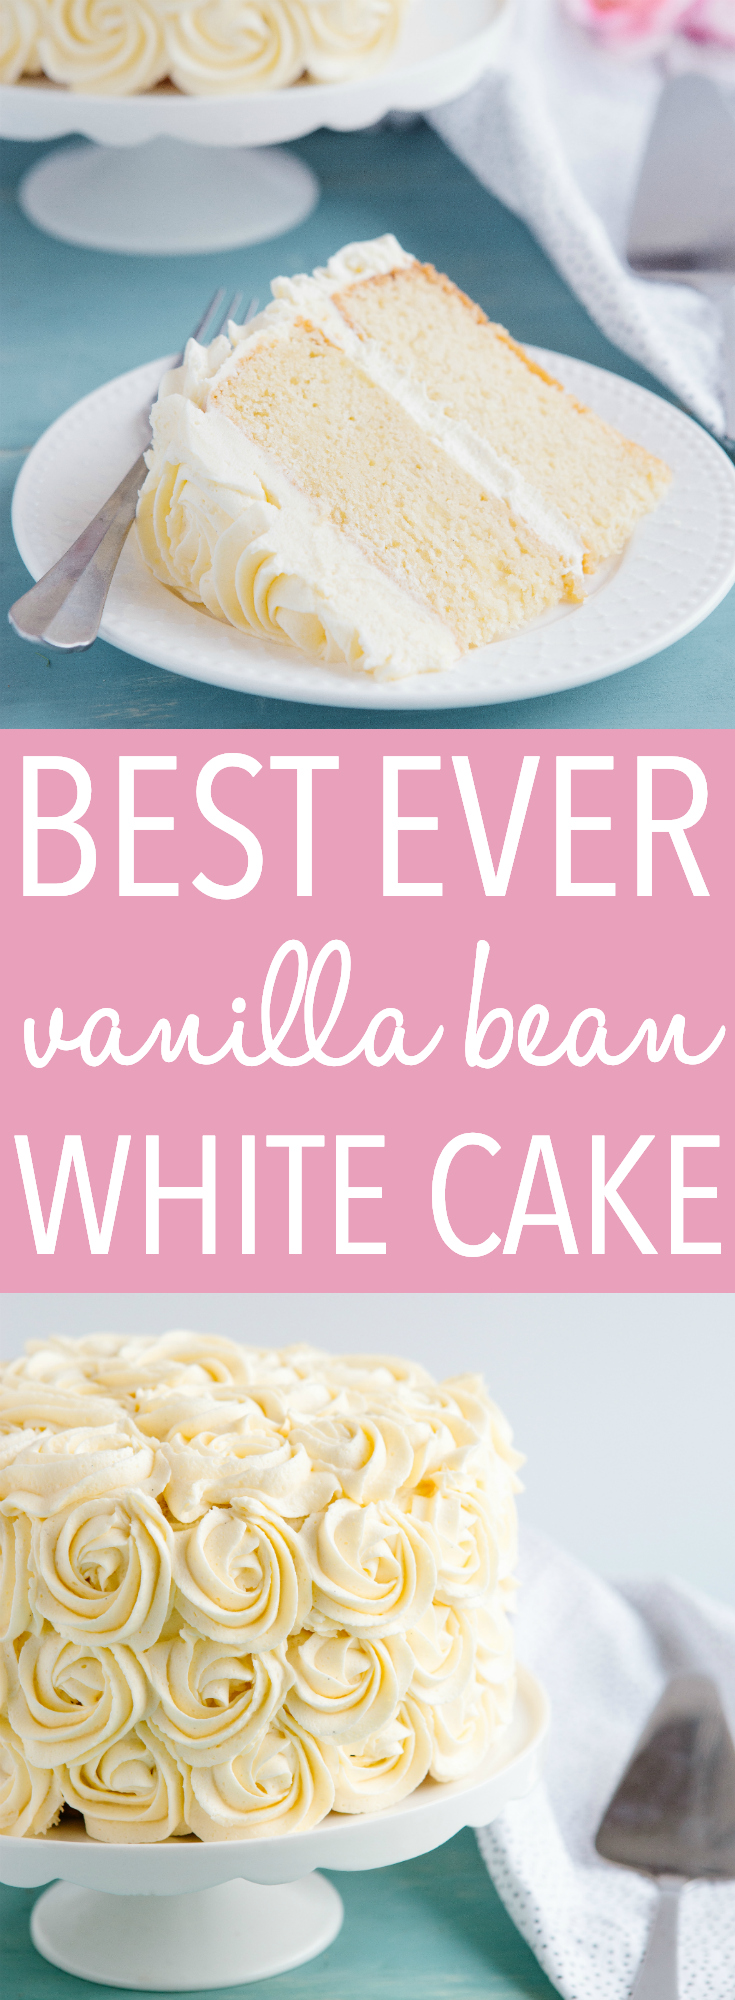 This Best Ever Vanilla Bean White Cake is one of the best birthday cake recipes I've ever made. Tender vanilla cake with fluffy frosting, made with real vanilla beans! Recipe from thebusybaker.ca! #cake #birthday #vanilla #white #whitecake #wedding #bridesmaid #bridalshower #babyshower #rosette #roses #recipe #homemade via @busybakerblog